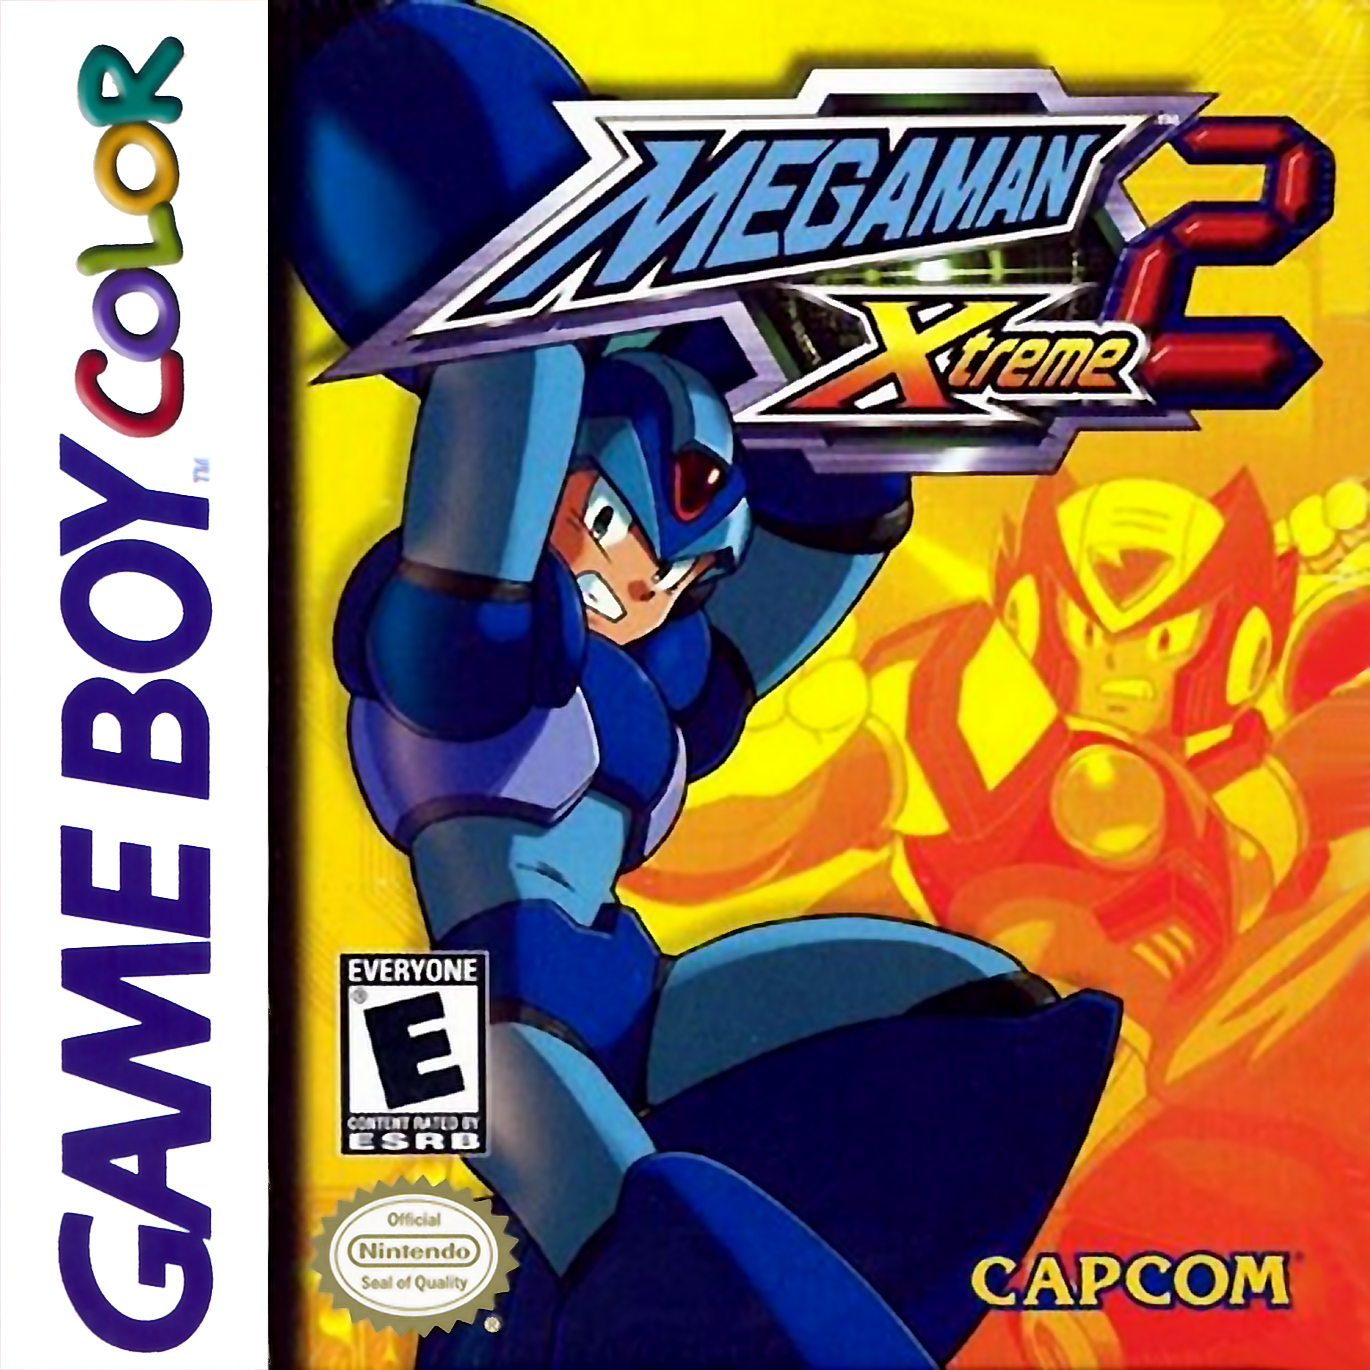 Game boy color online games - Mega Man Xtreme 2 Nintendo Game Boy Color Cover Artwork